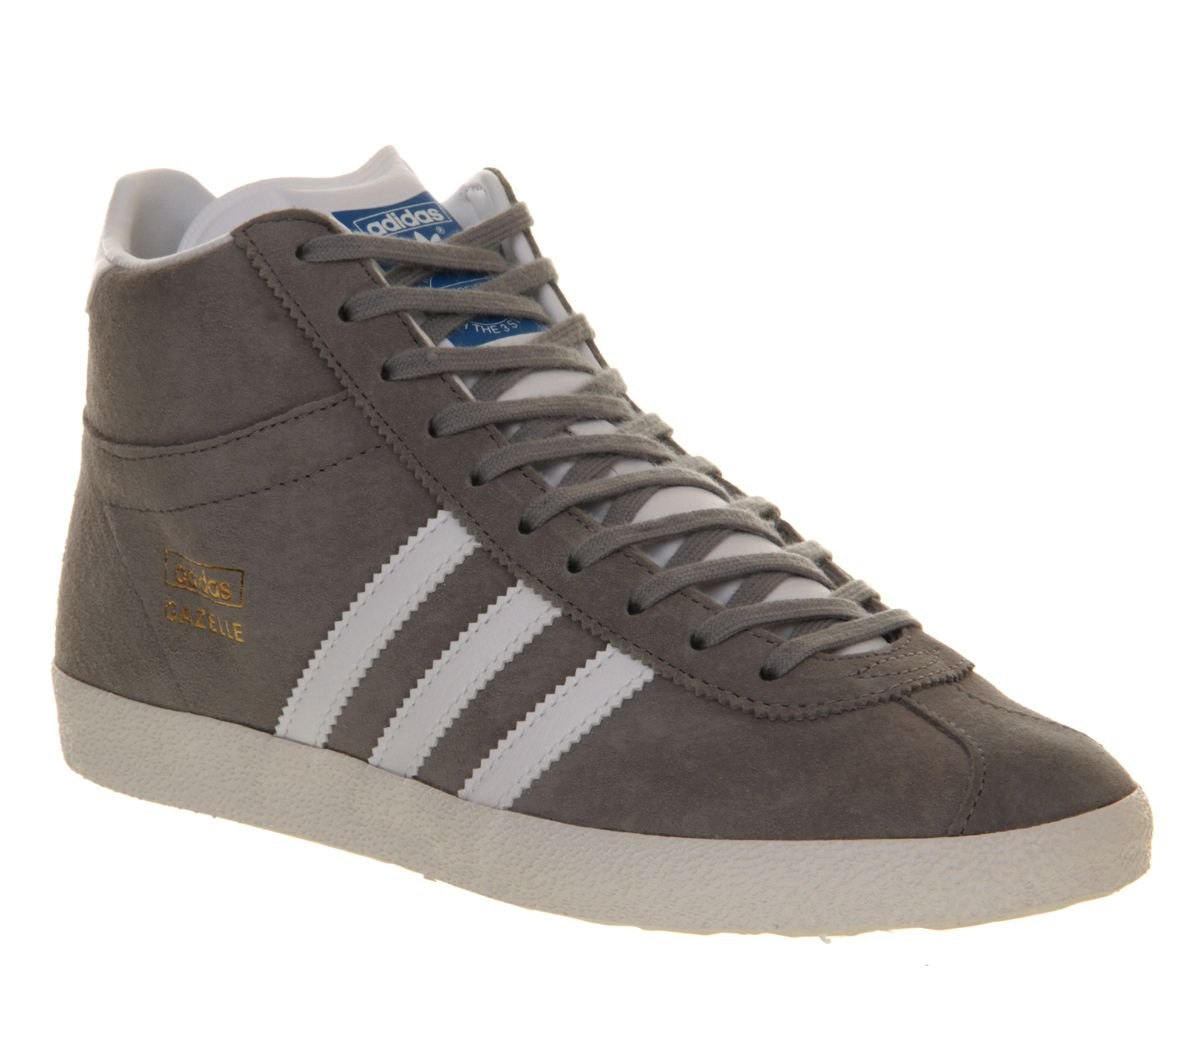 Adidas Gazelle og mid trainers Grey